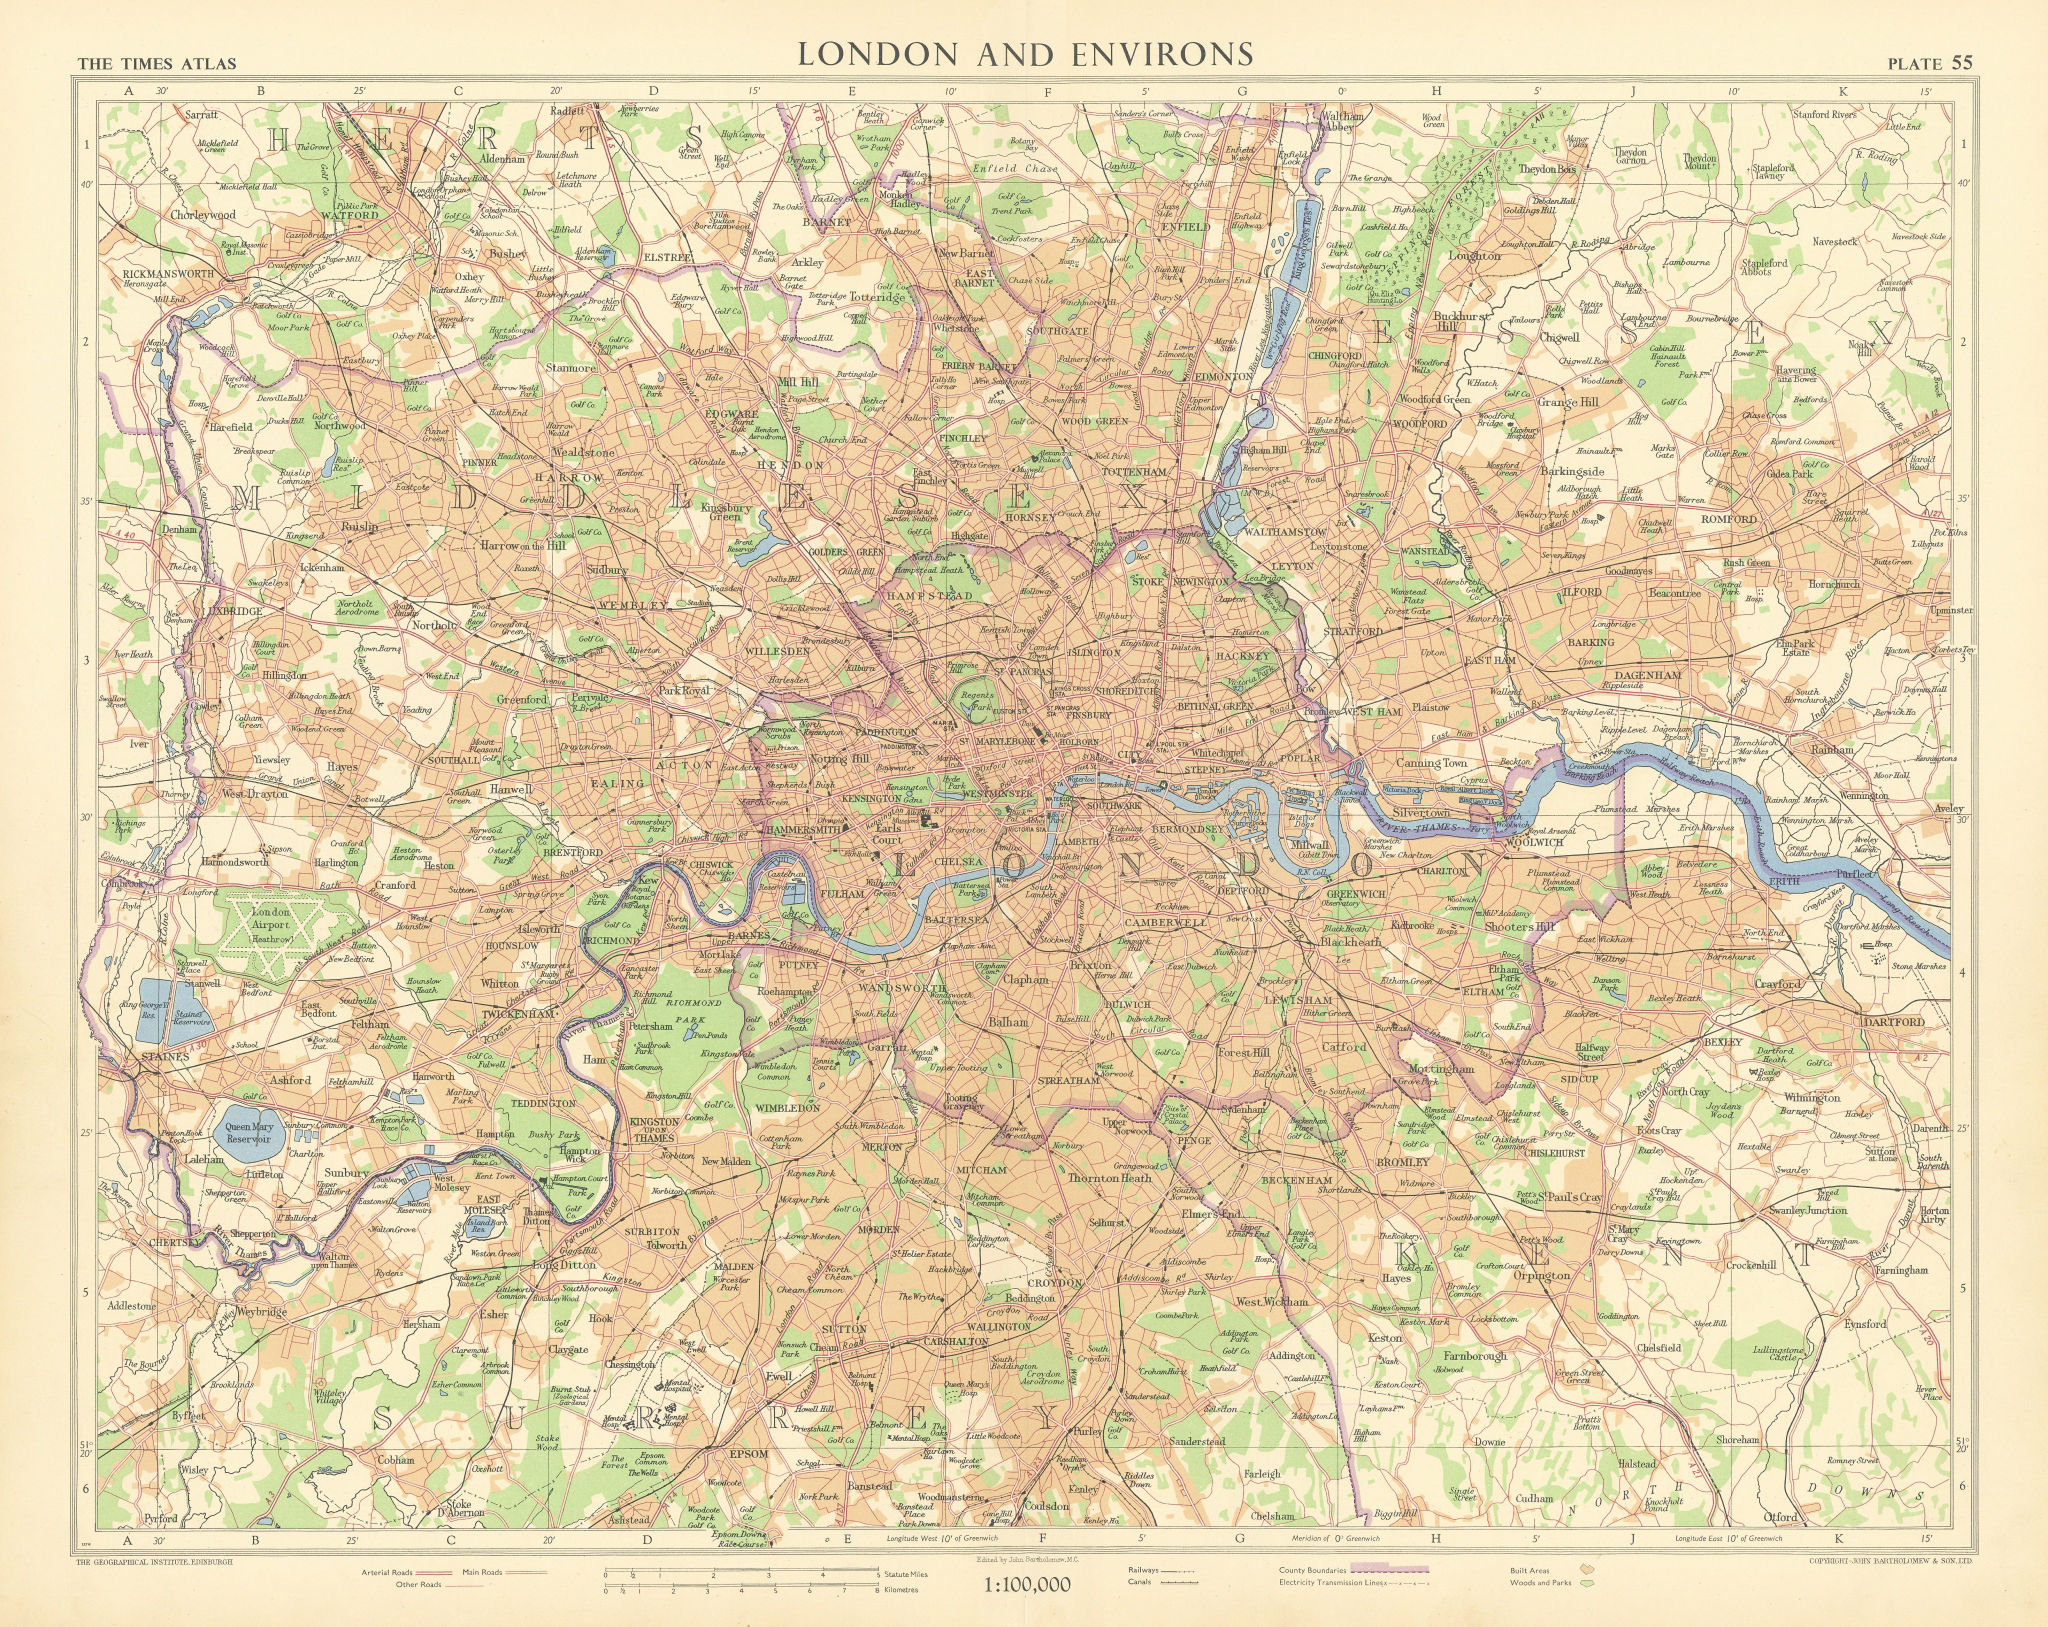 Greater London. Railways canals electricity transmission lines. TIMES 1955 map